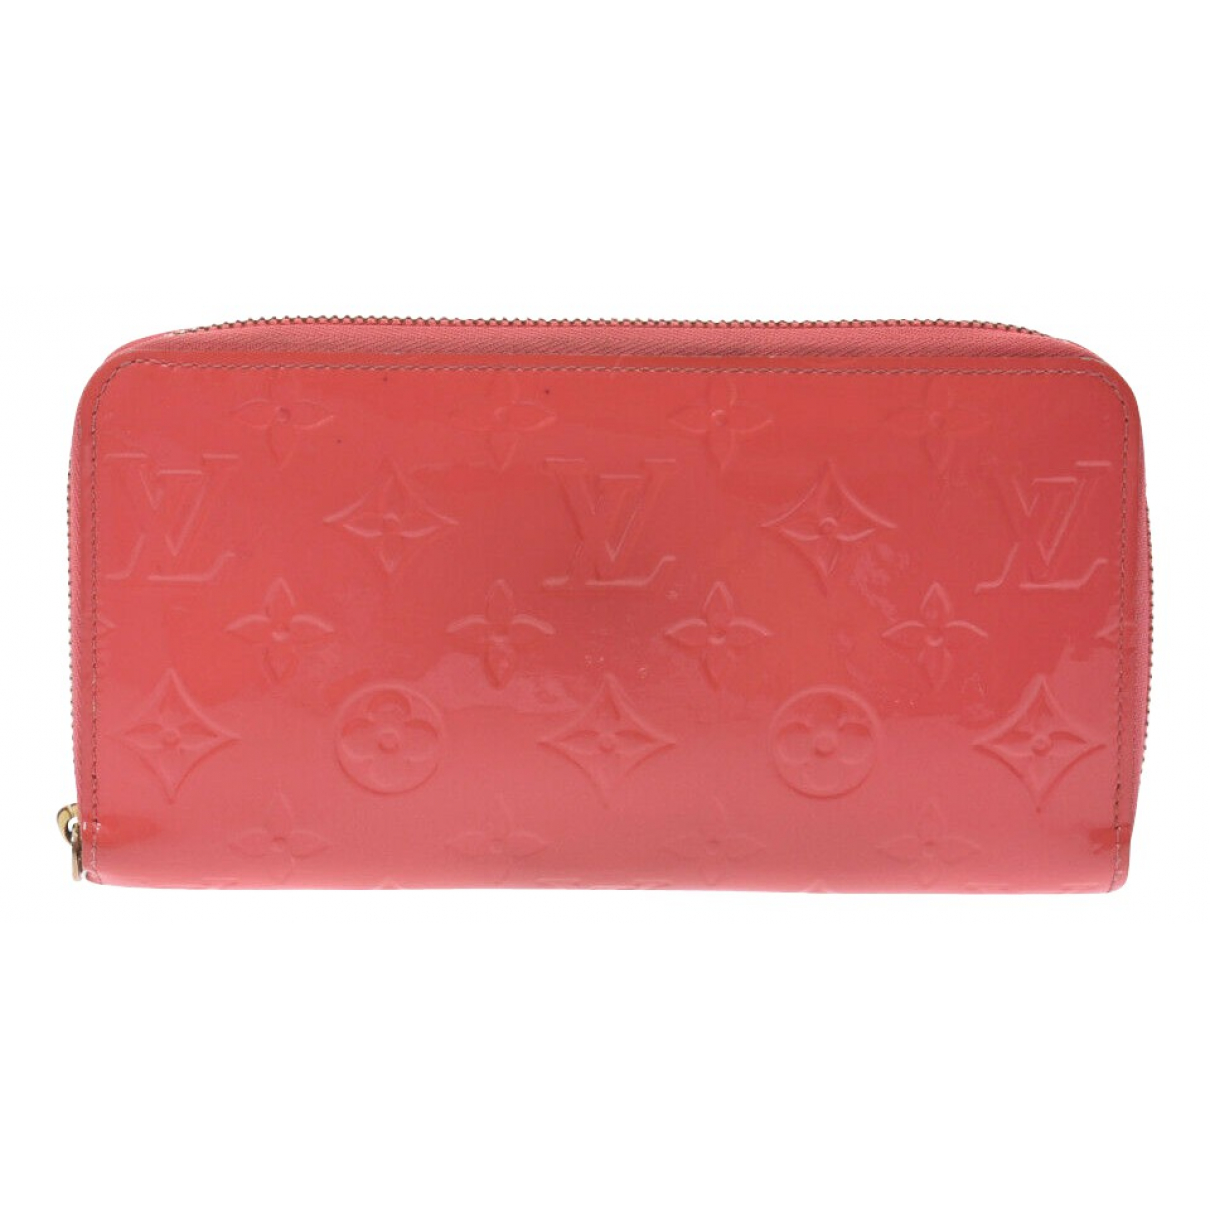 Louis Vuitton Zippy Pink Leather wallet for Women \N